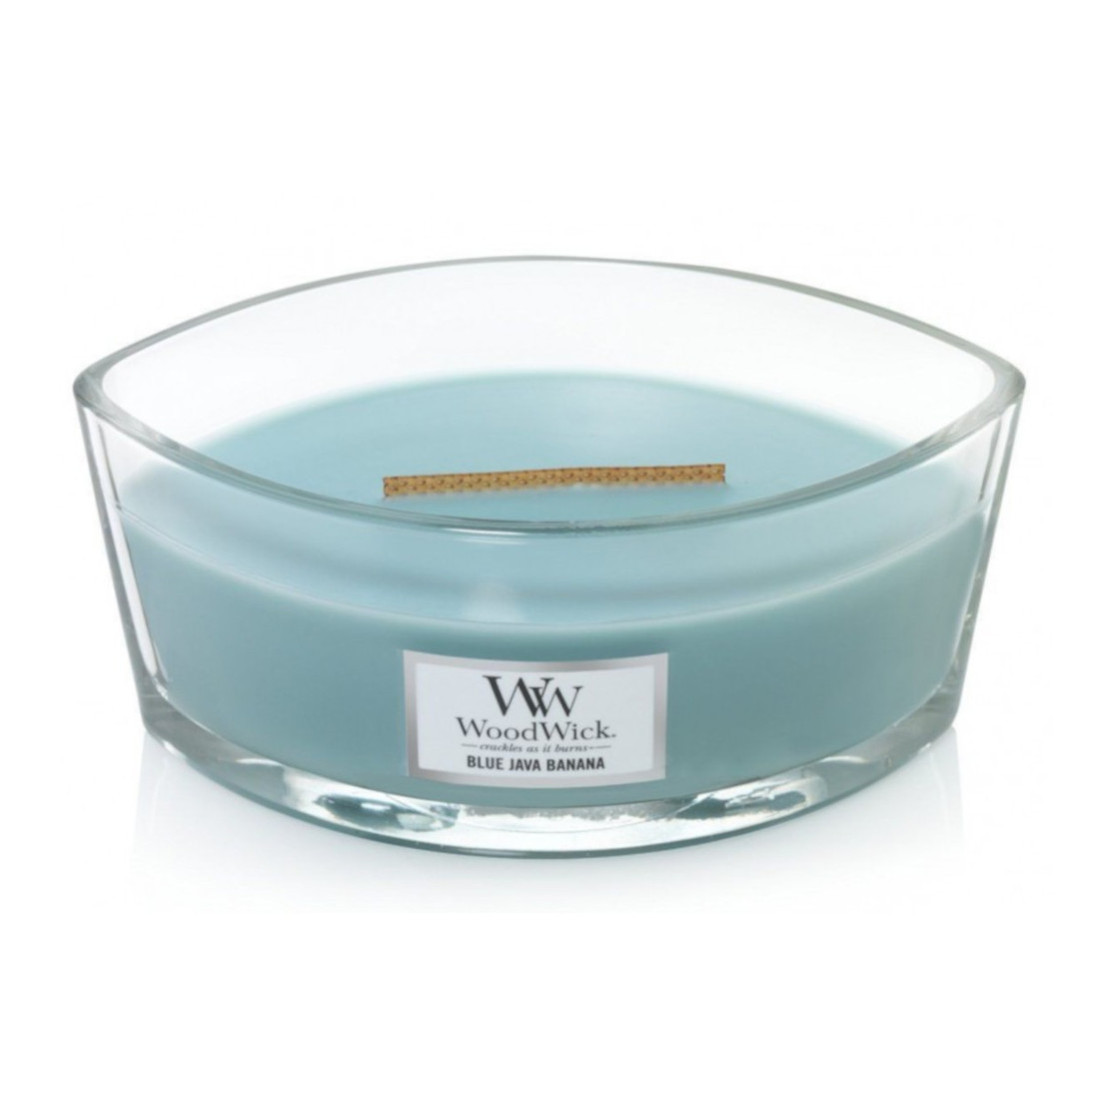 Woodwick Blue Java Banana Ellipse Hearthwick Candle